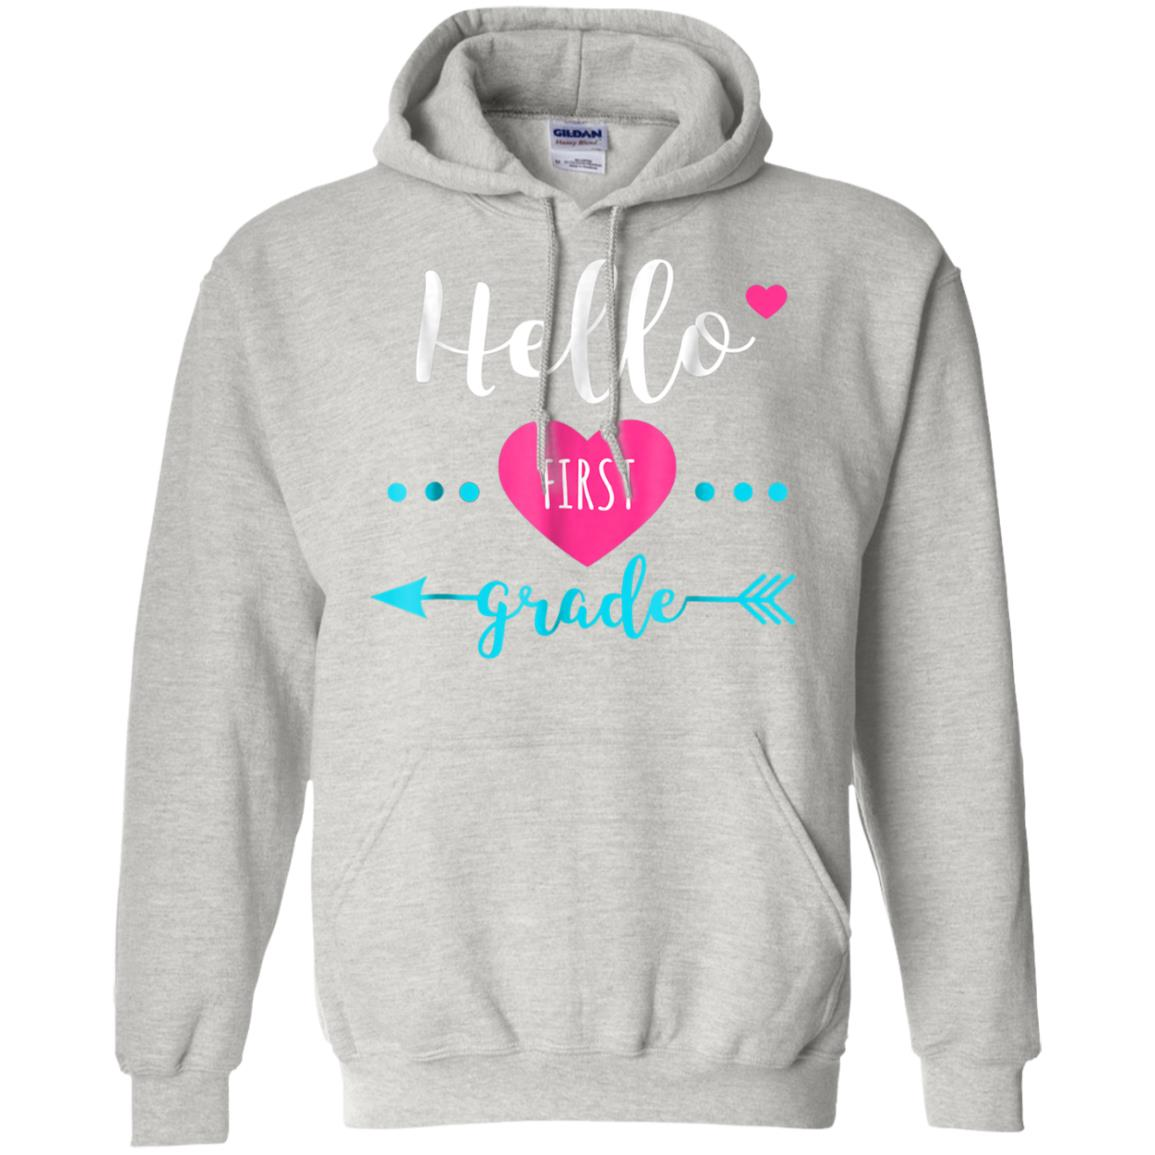 Hello First Grade Back to School Gift for 1st Grade Girls 99promocode